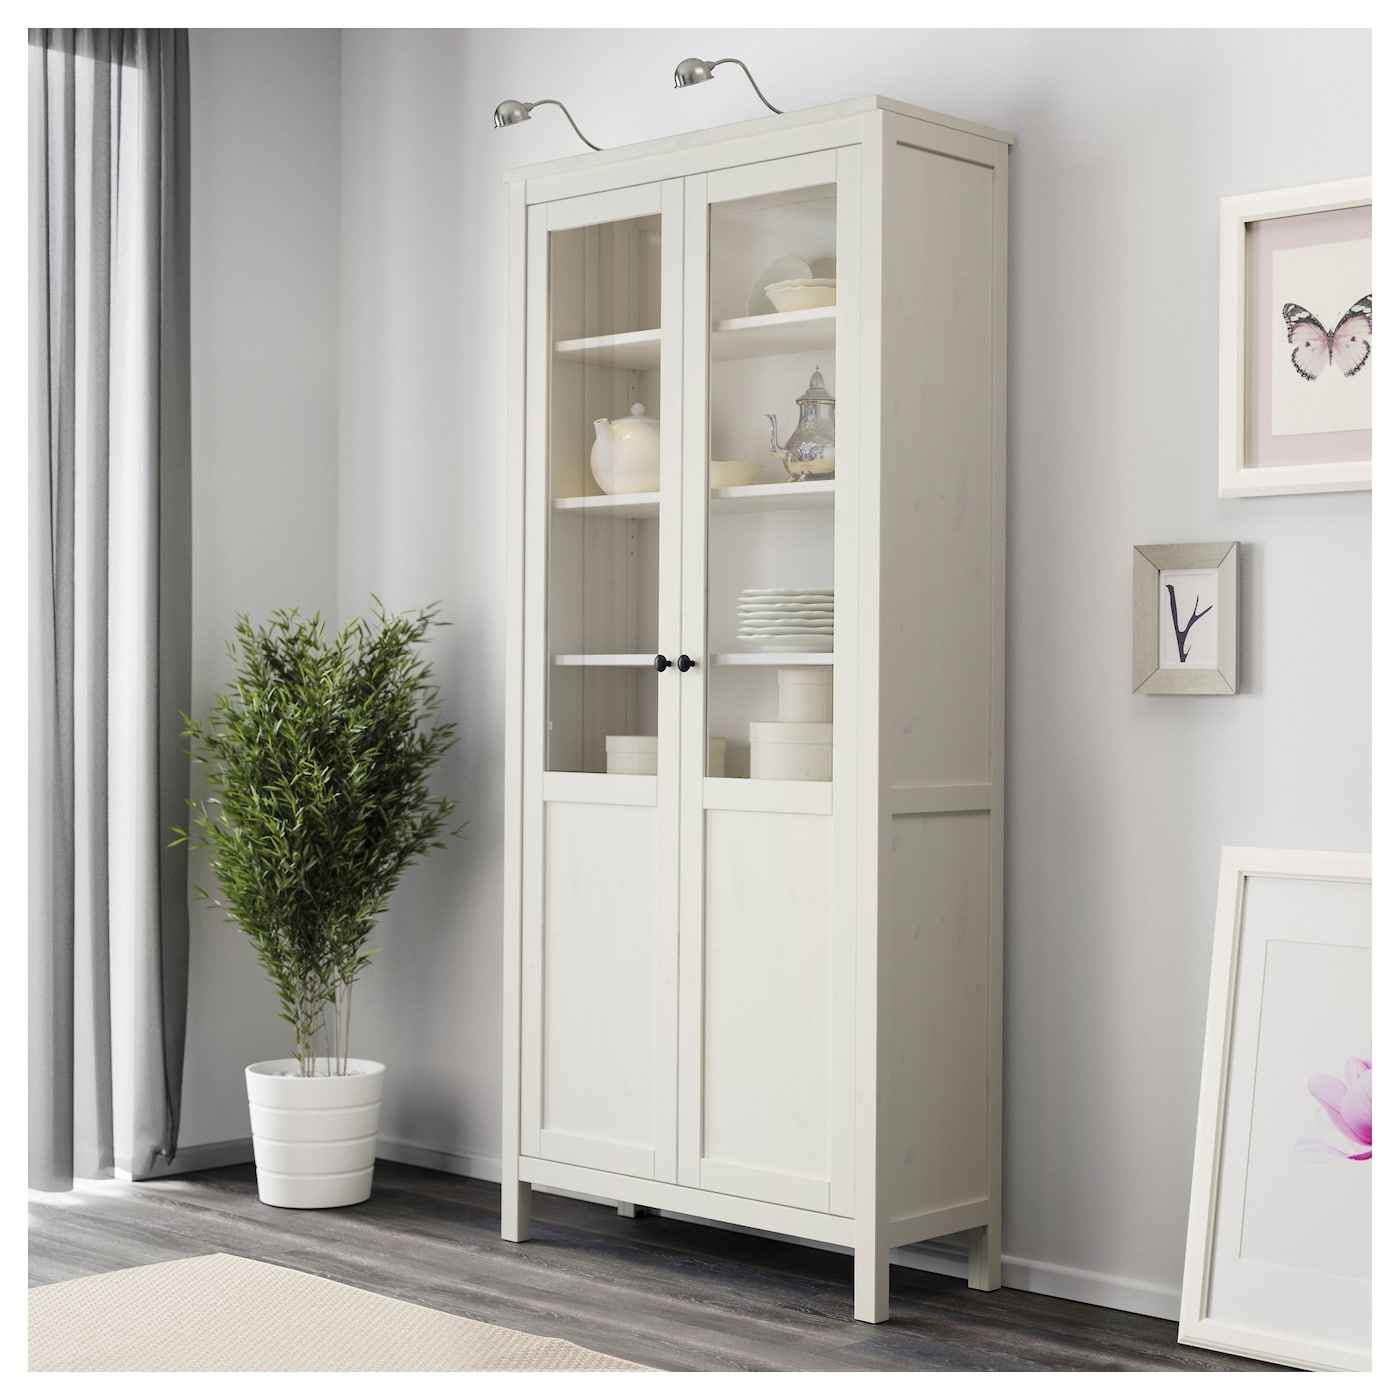 hemnes cabinet with panel glass door white stain 90 x 197 cm ikea. Black Bedroom Furniture Sets. Home Design Ideas